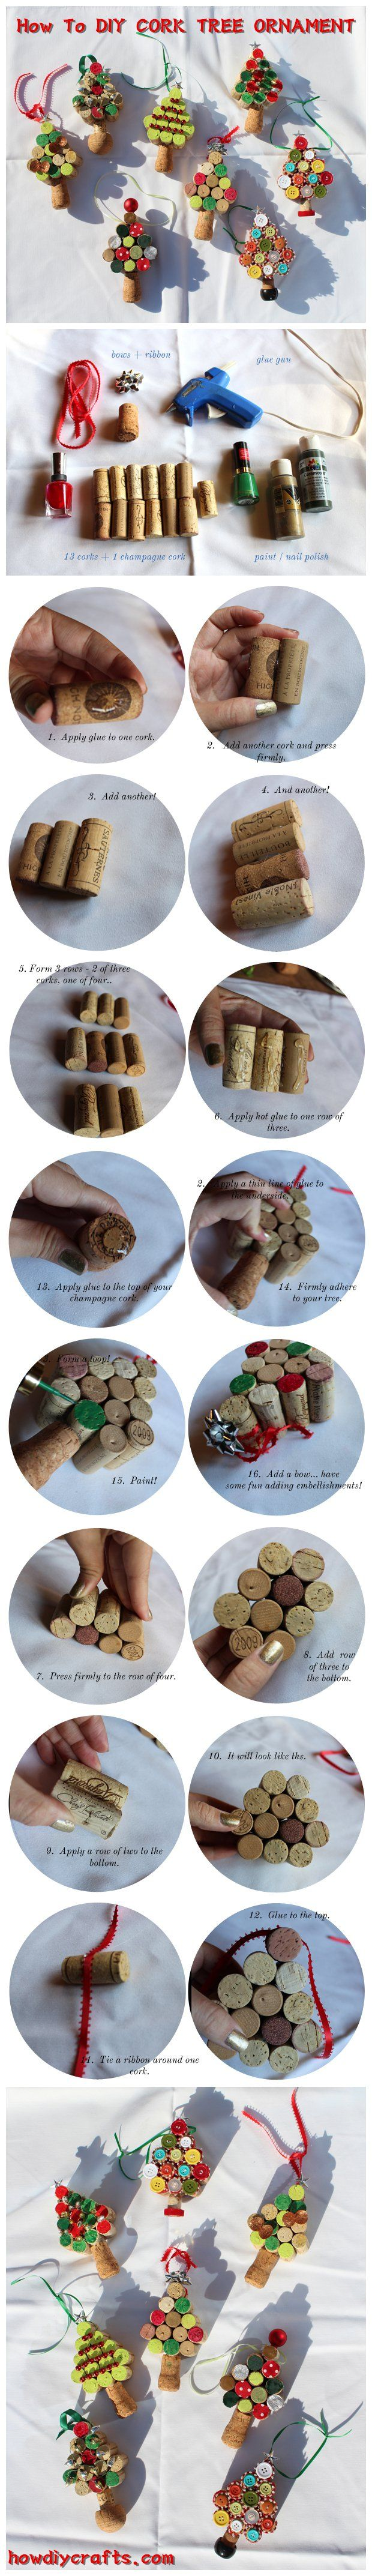 How To #DIY CORK TREE ORNAMENT